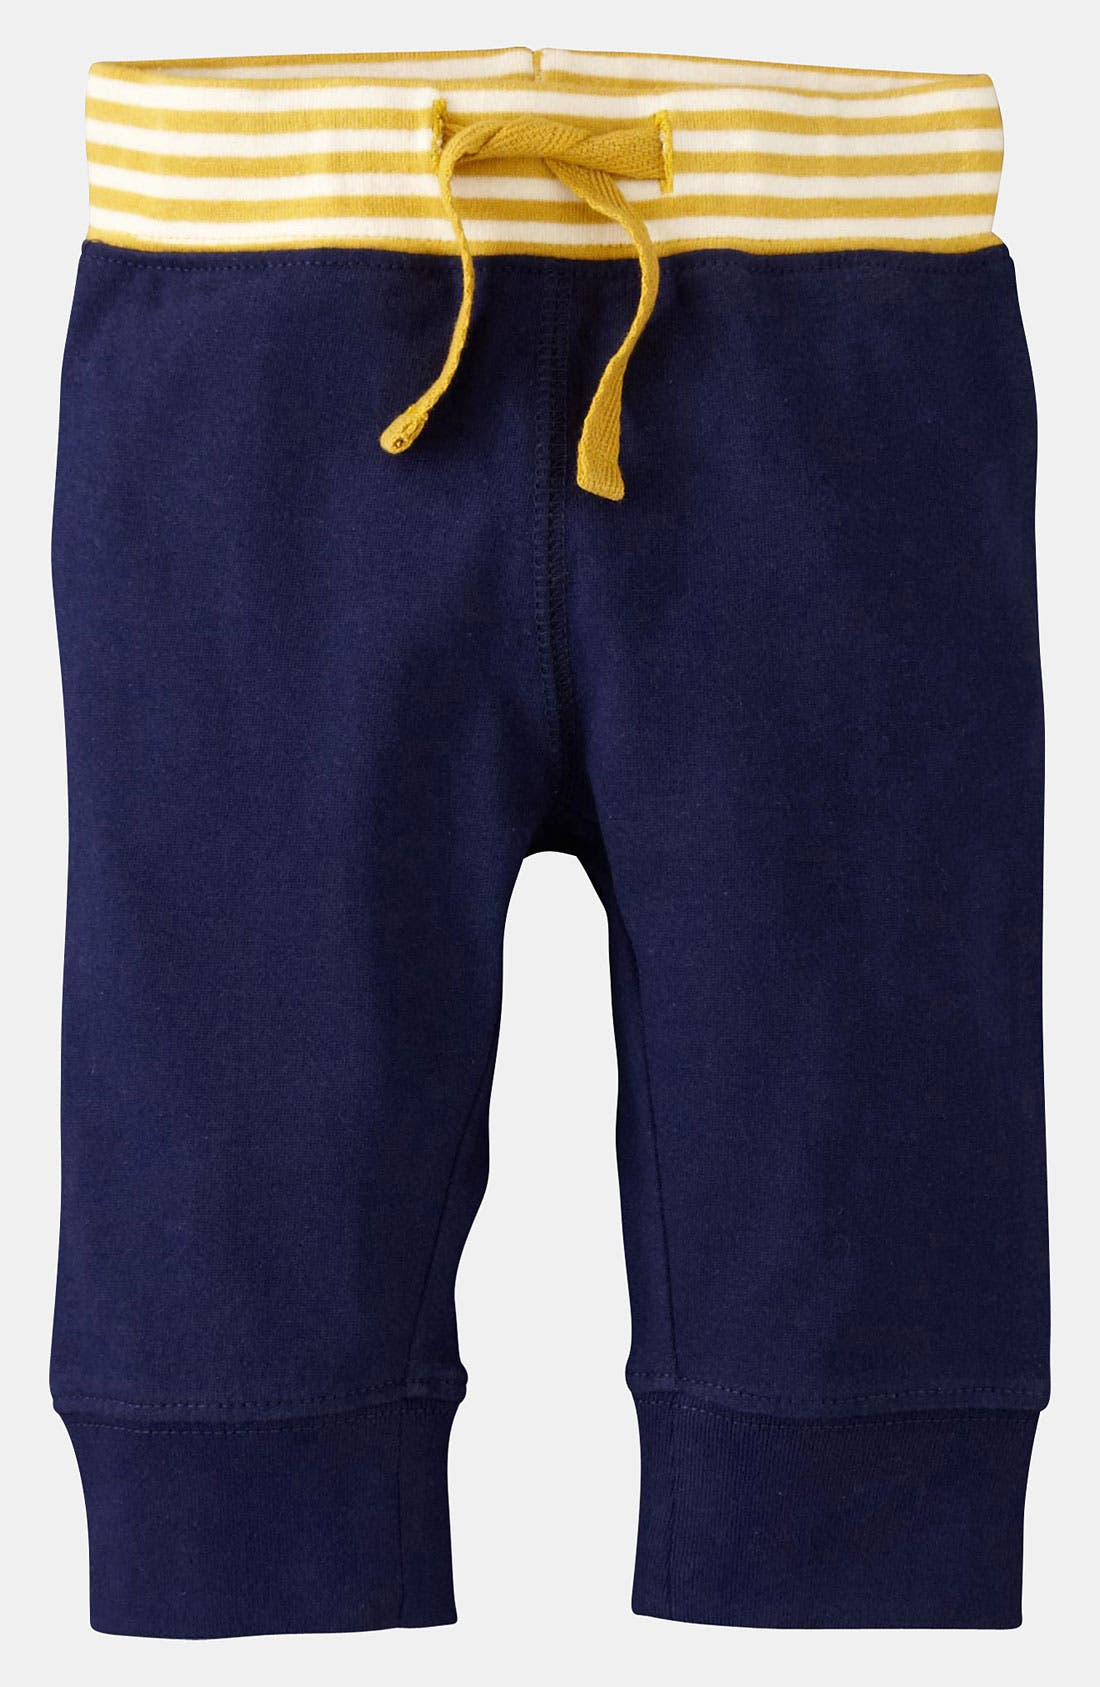 Alternate Image 1 Selected - Mini Boden 'Essential' Jersey Pants (Infant)